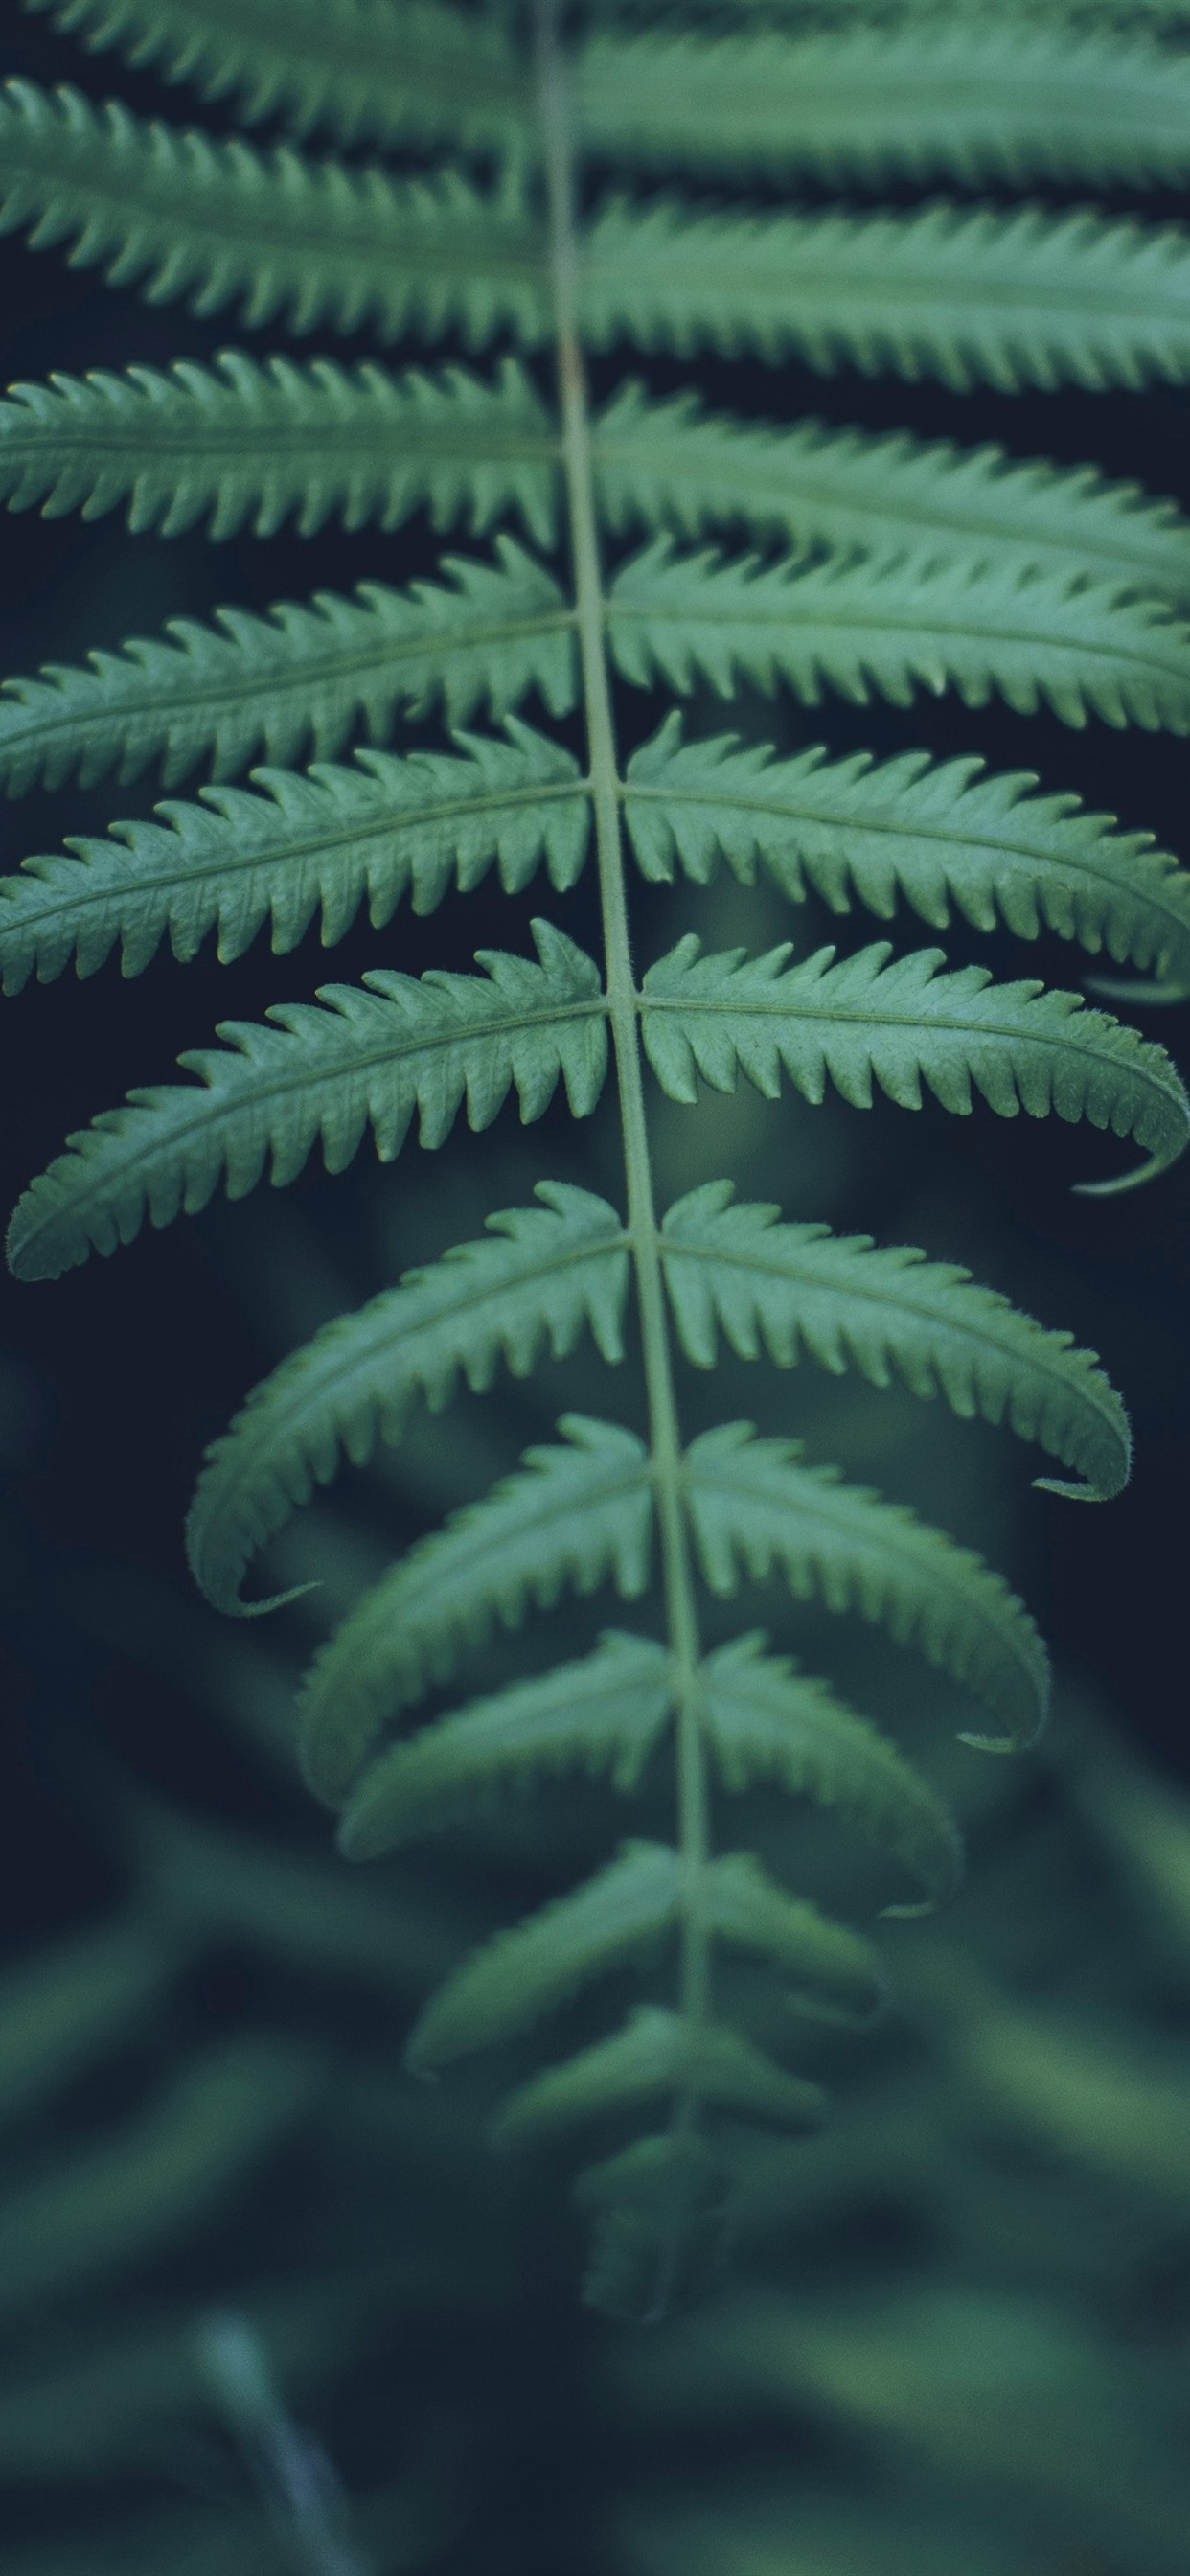 Green Fern Leaves Close Up 1242x2688 Iphone Xs Max Wallpaper